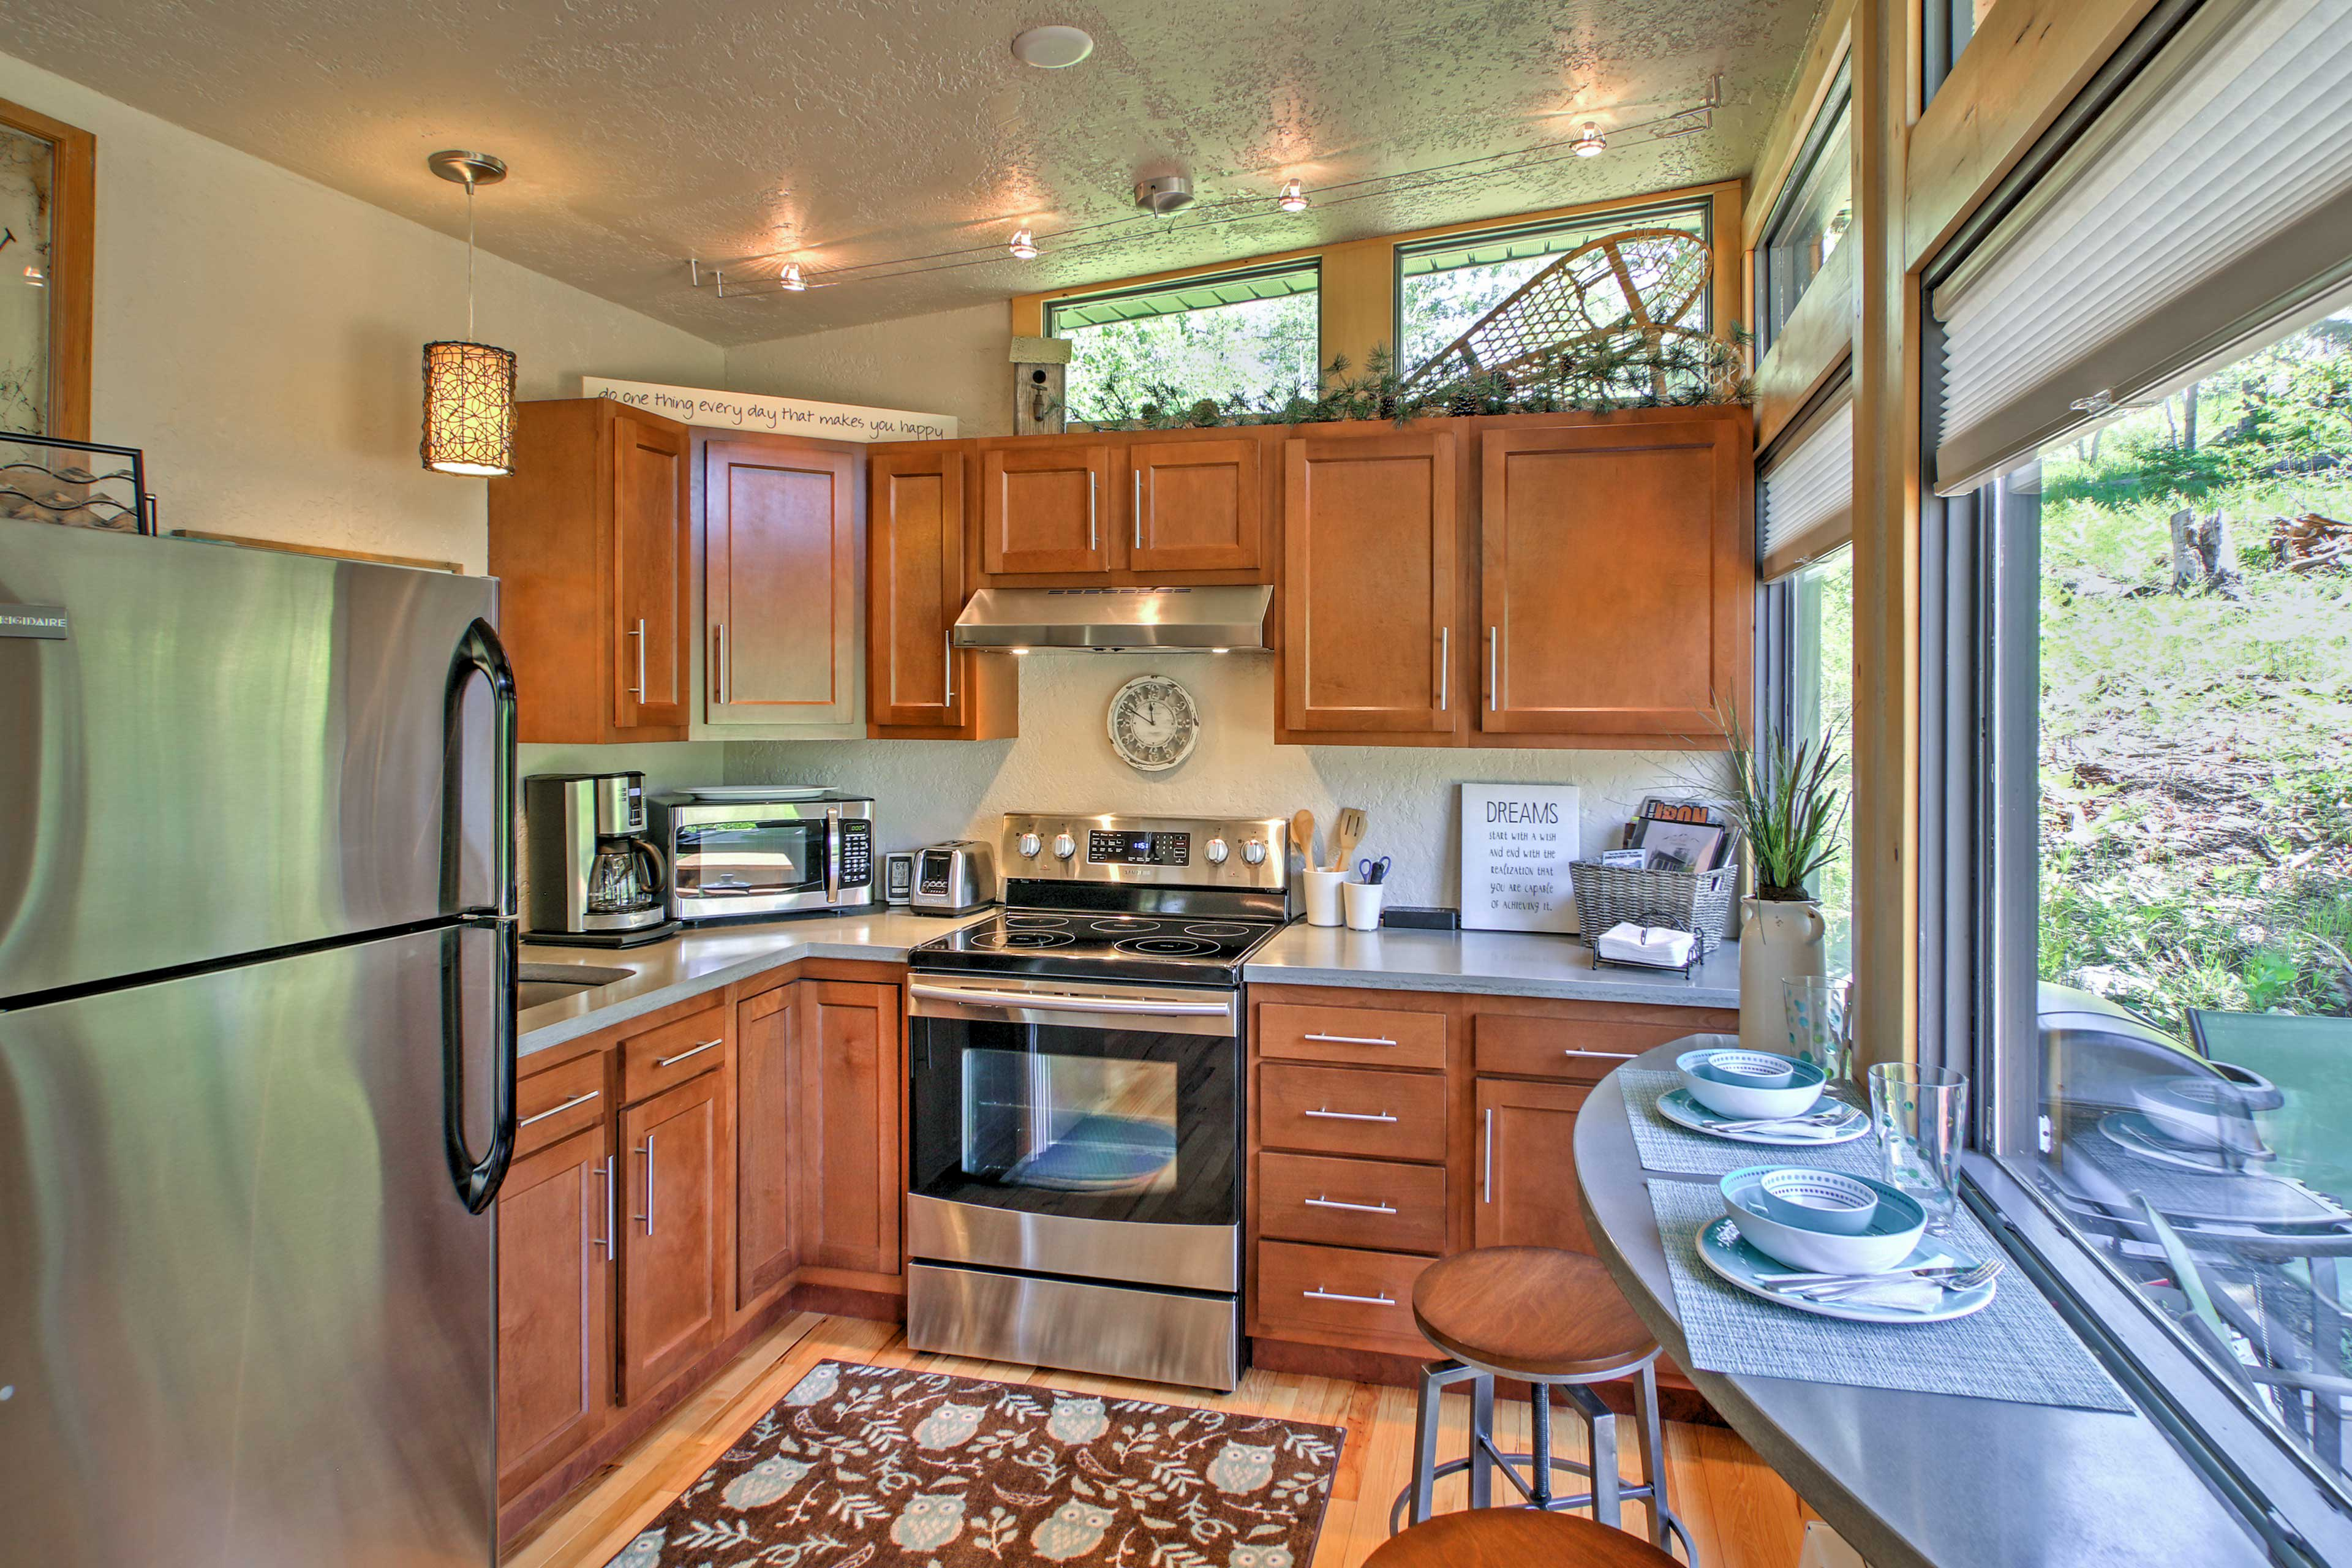 The full kitchen boasts pristine counter and modern stainless steel appliances.